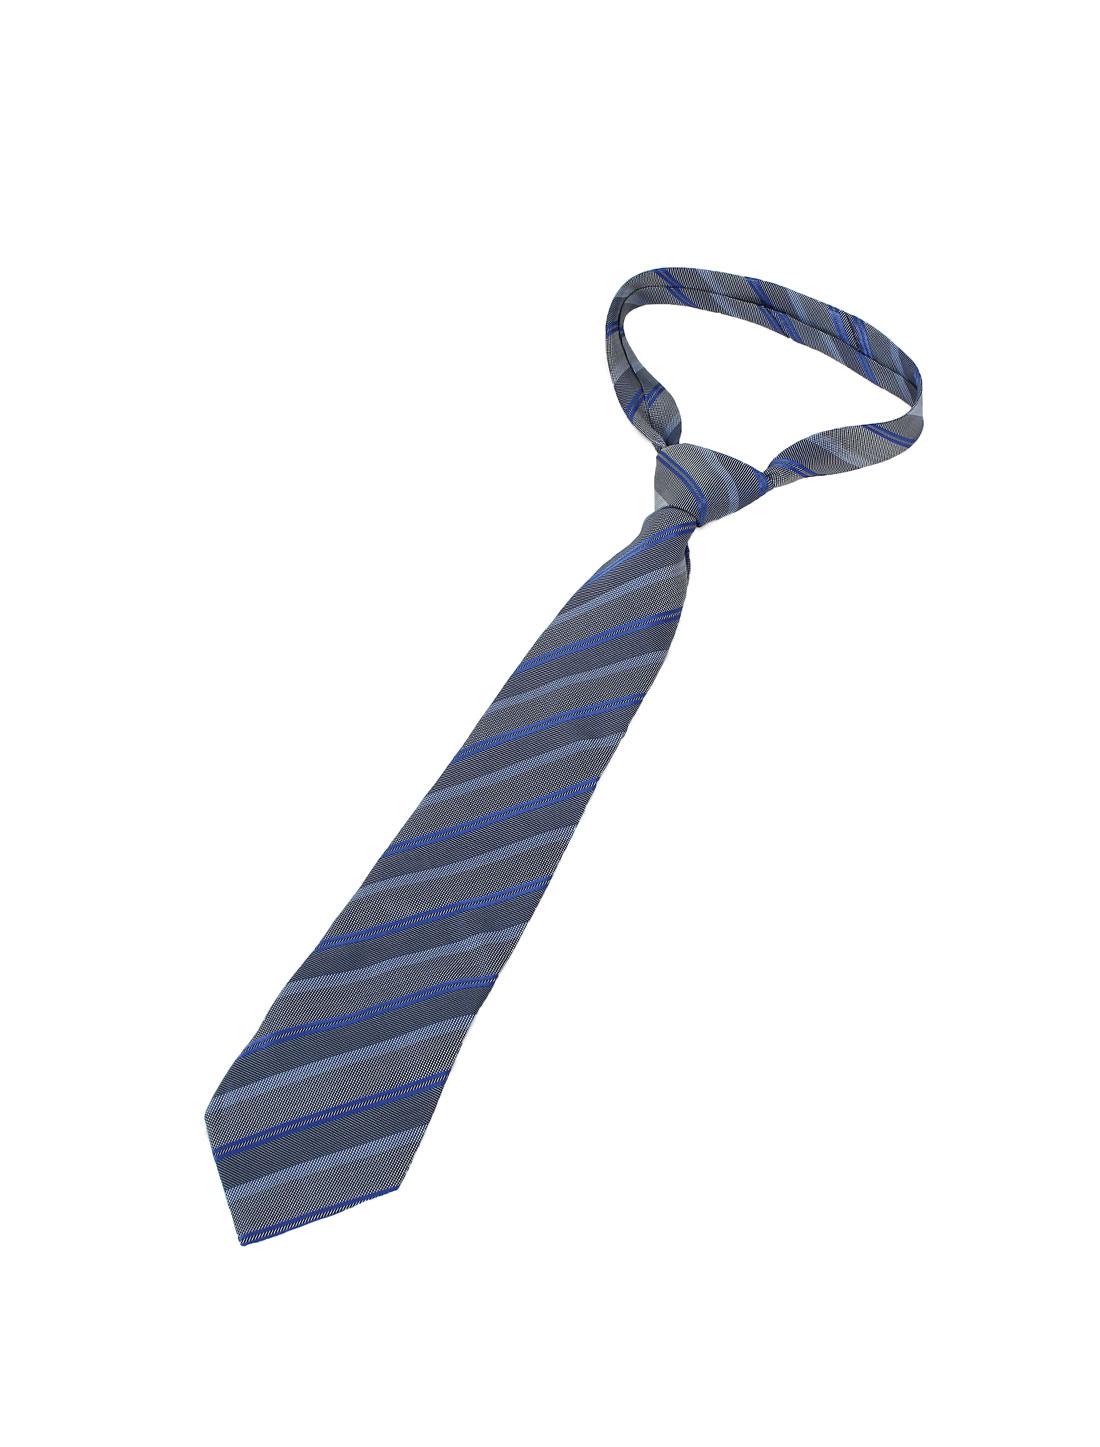 10cm Wide Gray Blue Polyester Diagonal Stripes Self Tie Necktie for Men